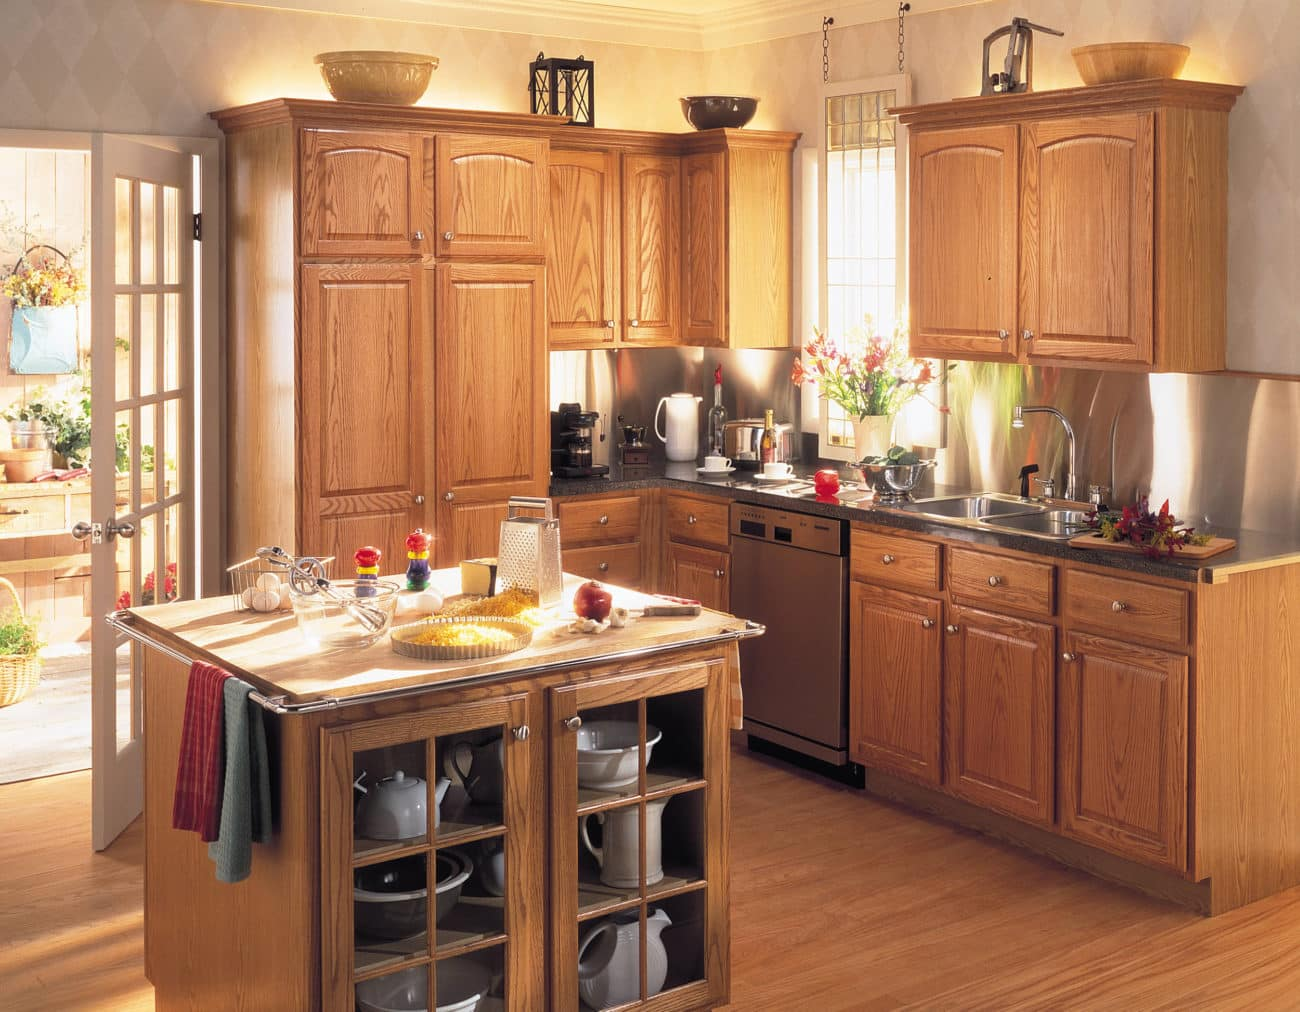 Kitchen Remodeling Albuquerque Decoration Albuquerque Cabinets Aesops Gables 505 2751804  Best Cabinets .